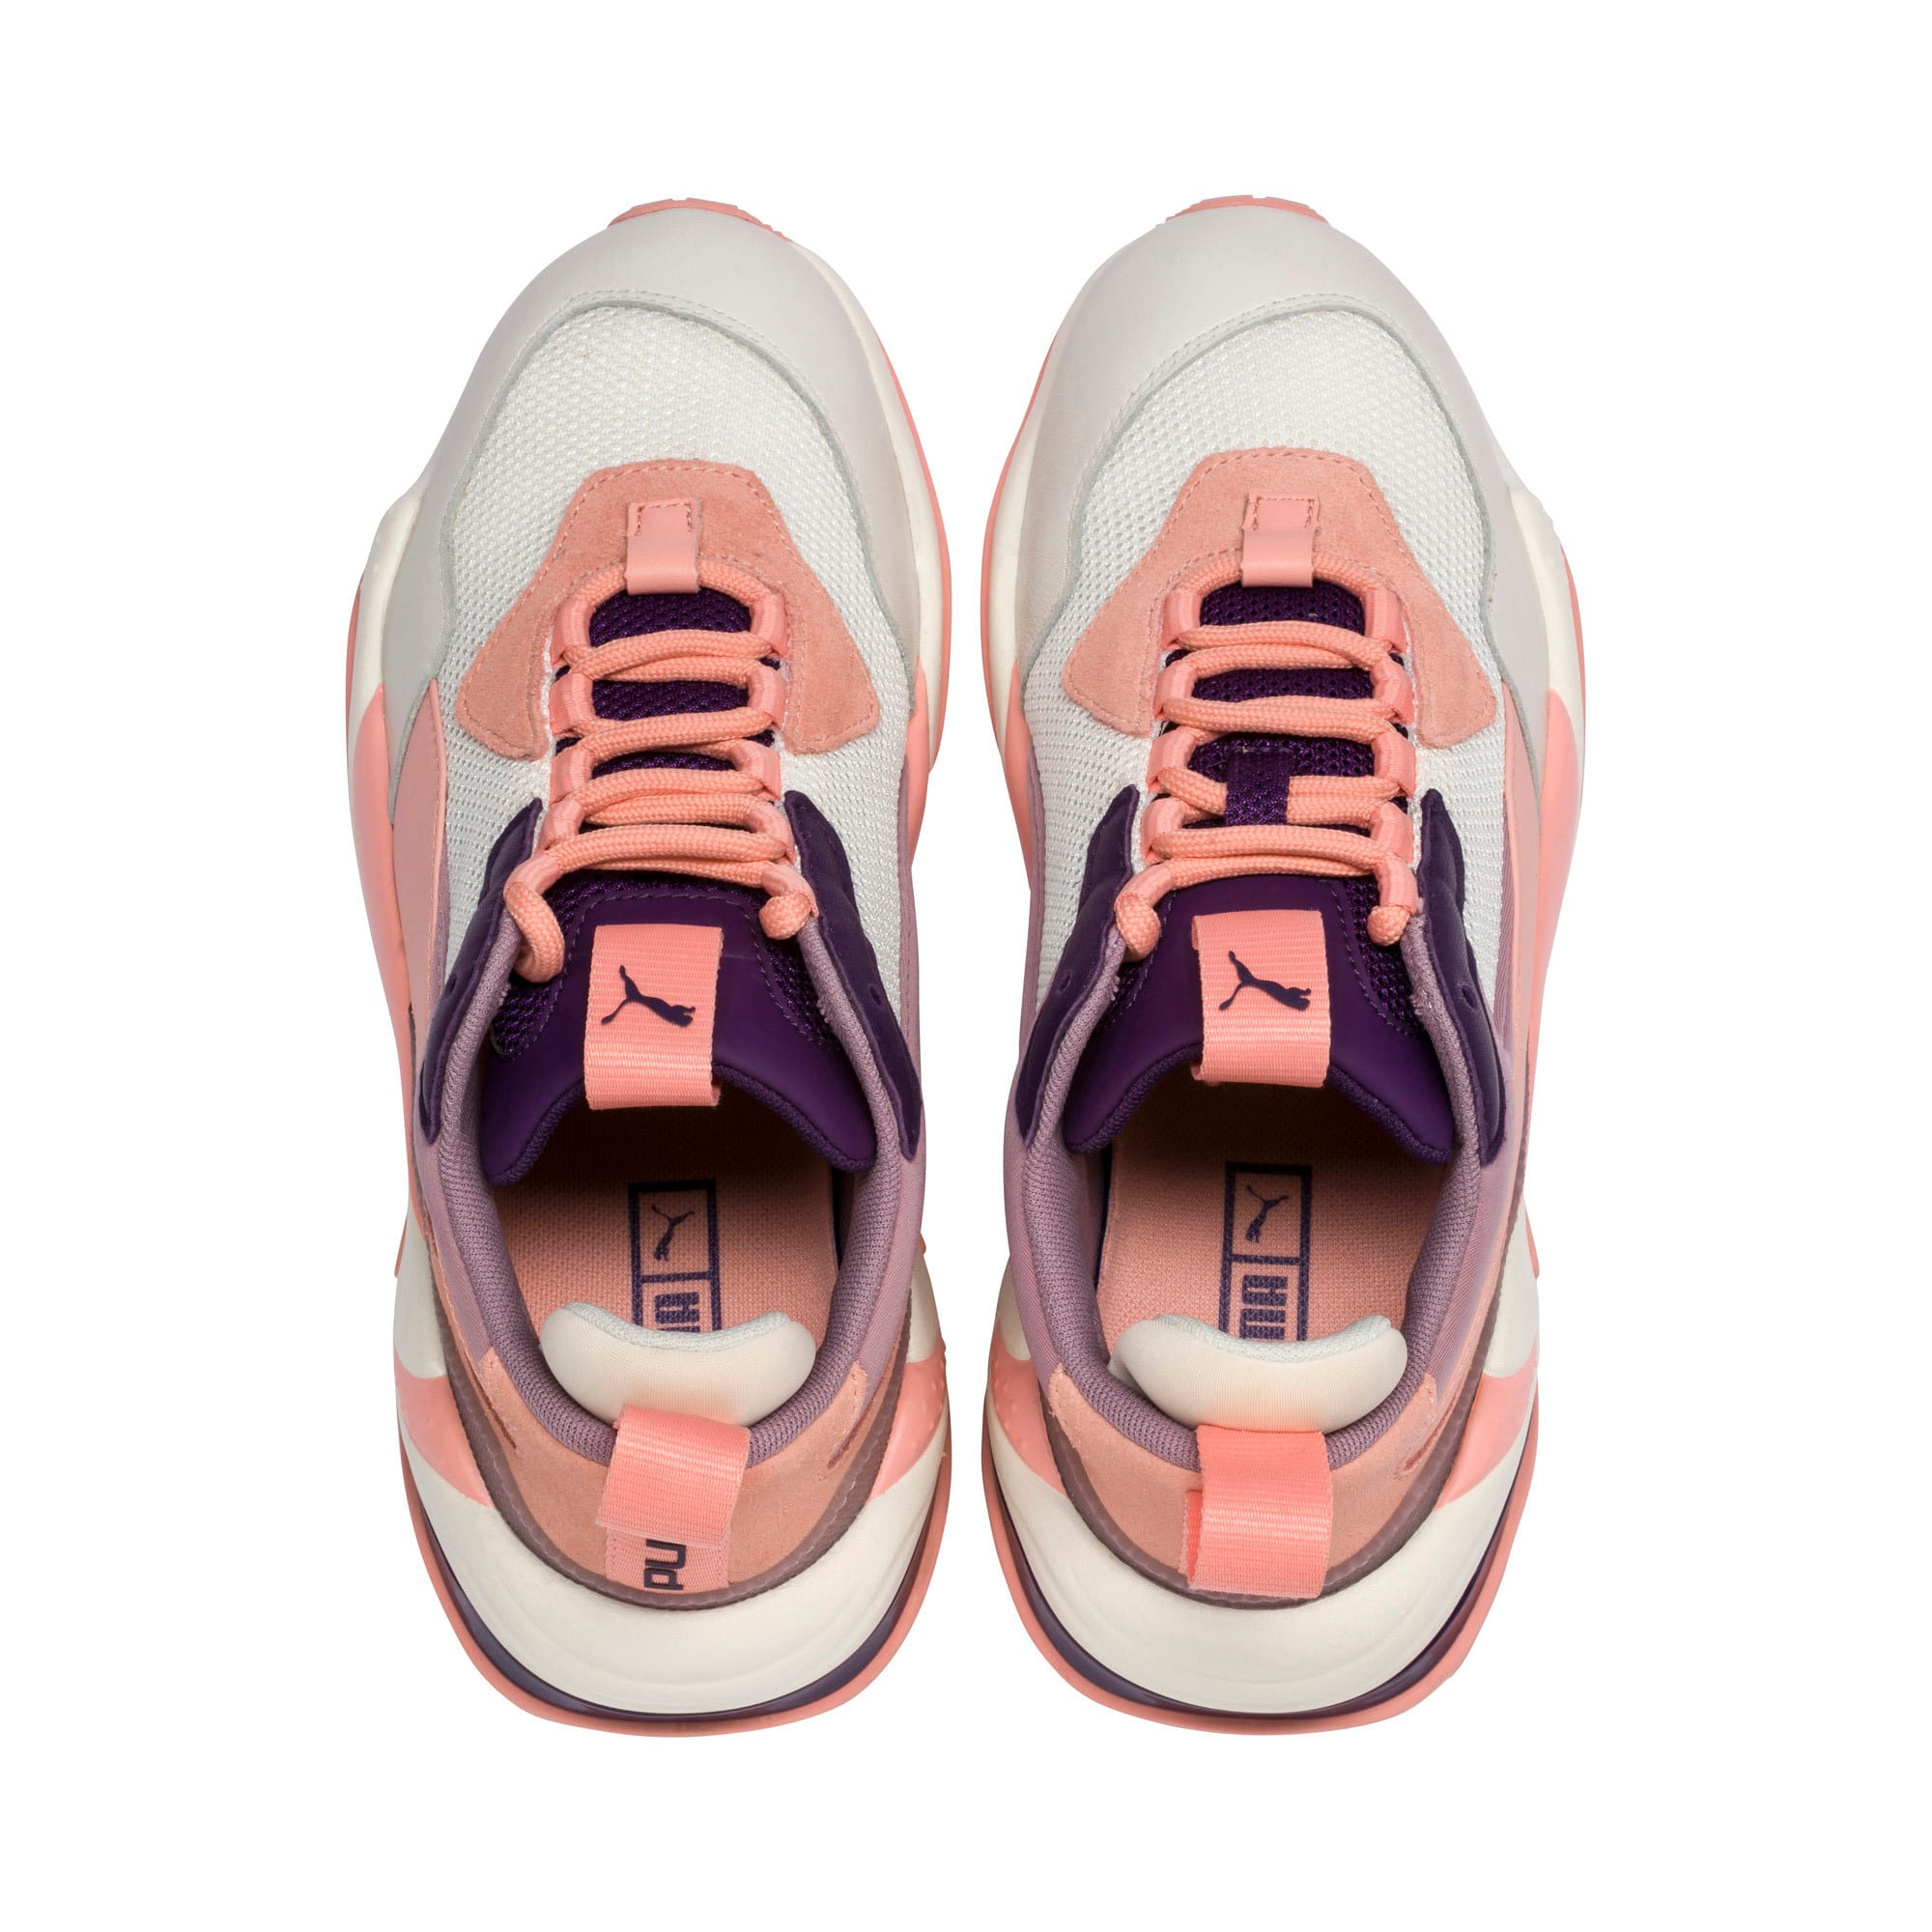 Thumbnail 6 of Thunder Spectra sneakers, Marshmallow-Peach Bud, medium